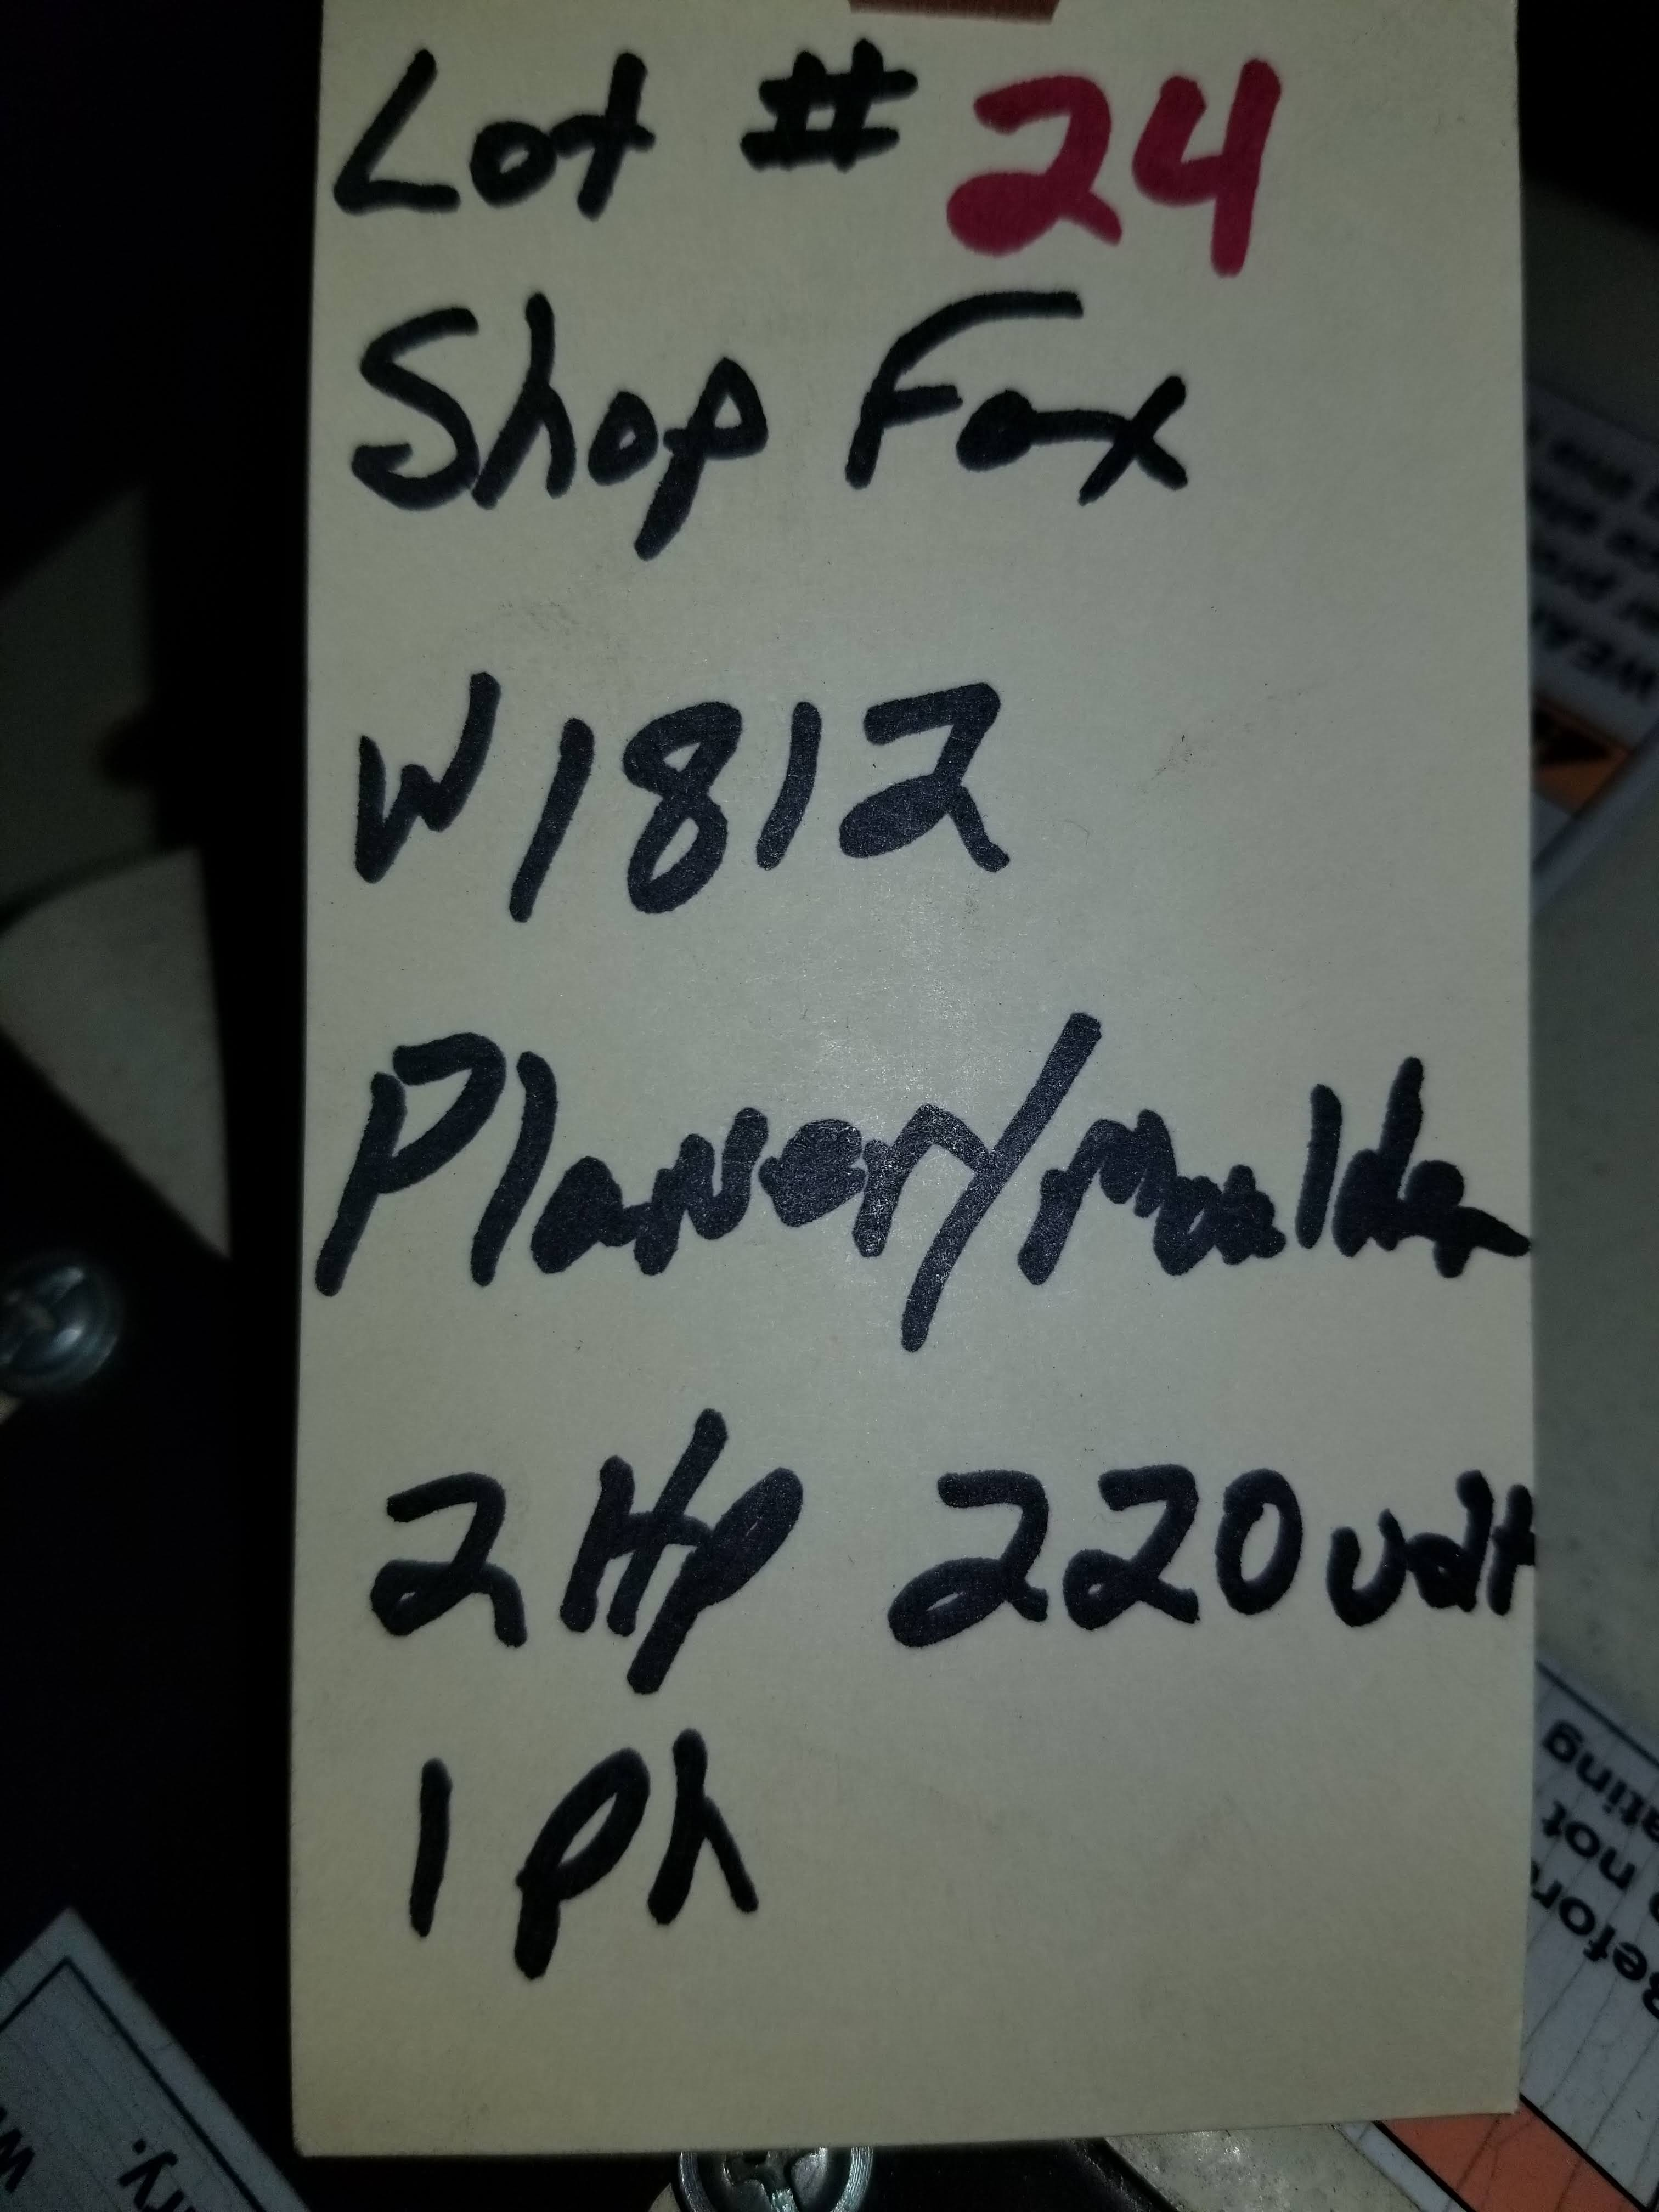 """Lot 24 - Shop Fox - 2 HP 7"""" Planer / Moulder with Stand W1812, 2hp 220V 1ph,"""